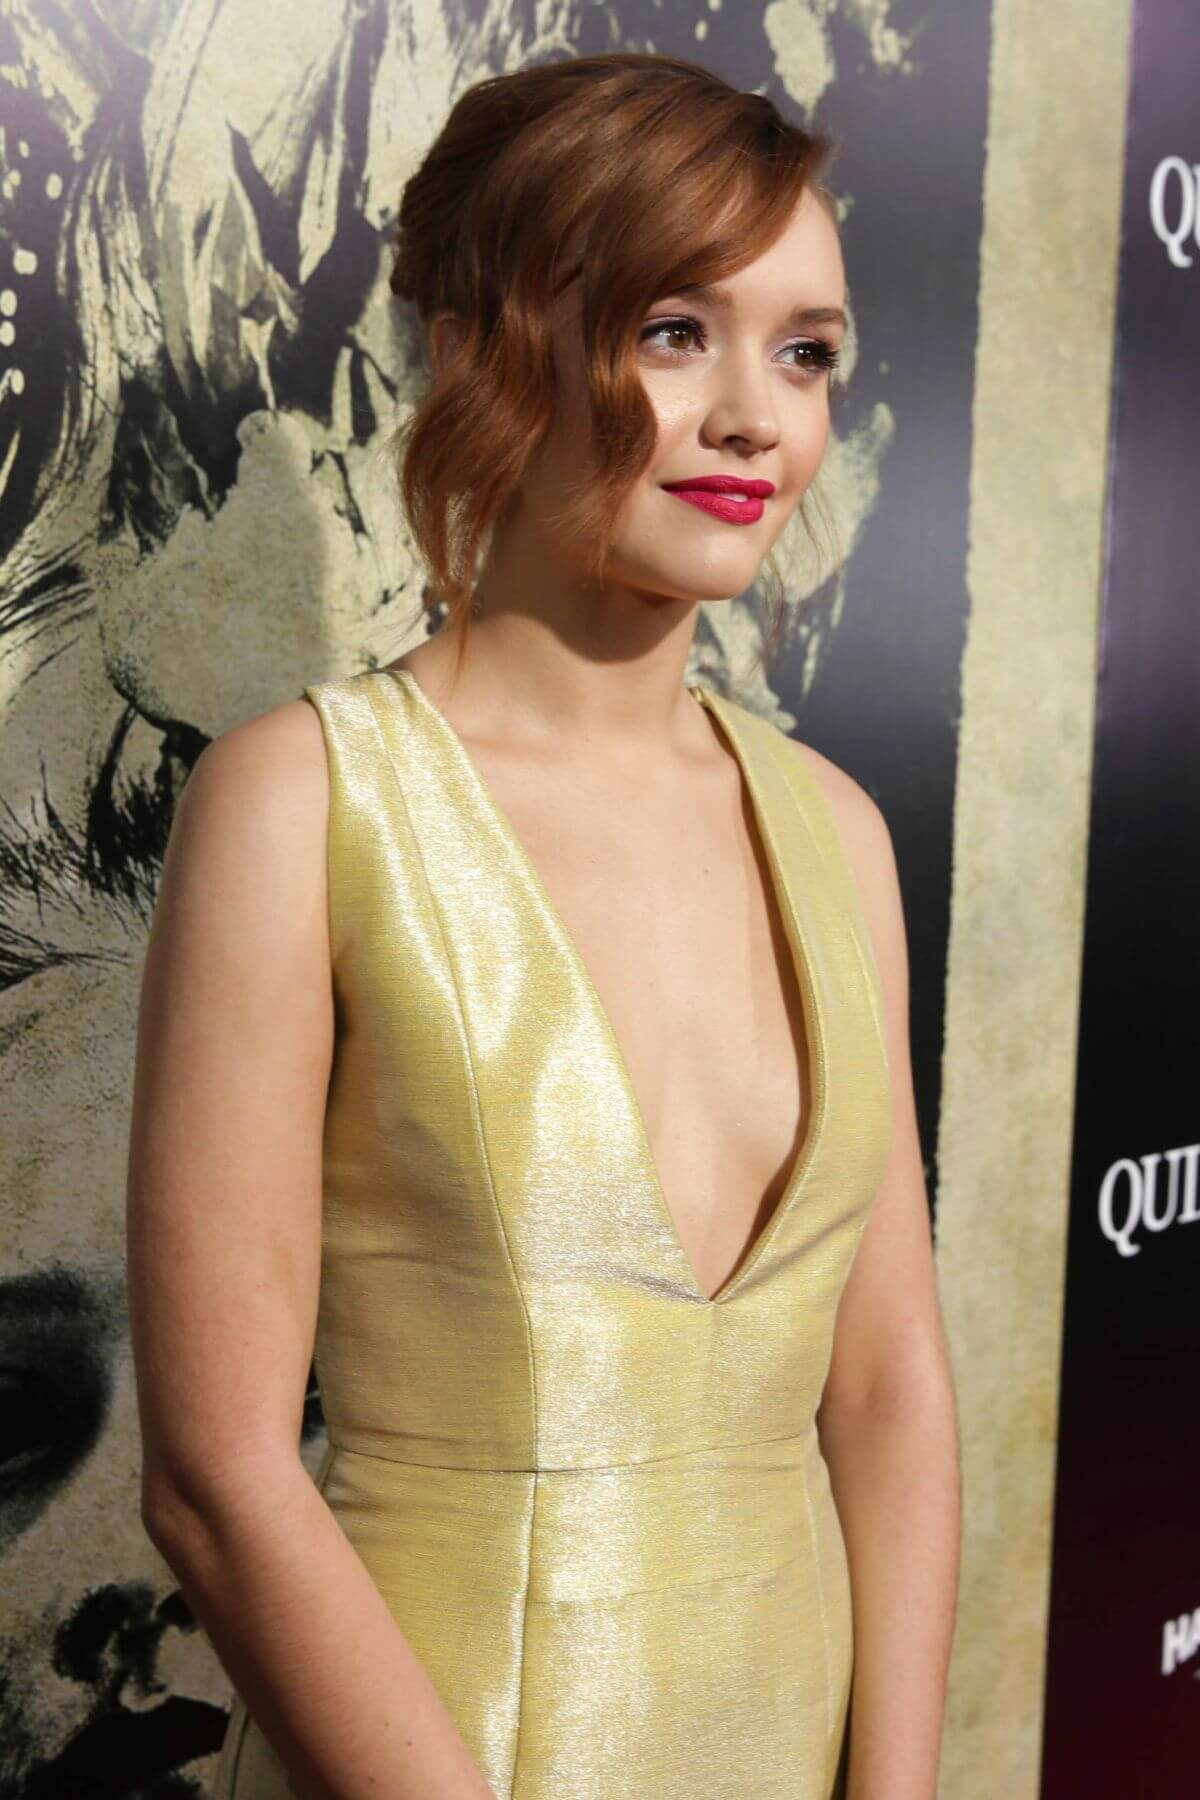 Cleavage Olivia Cooke nude photos 2019